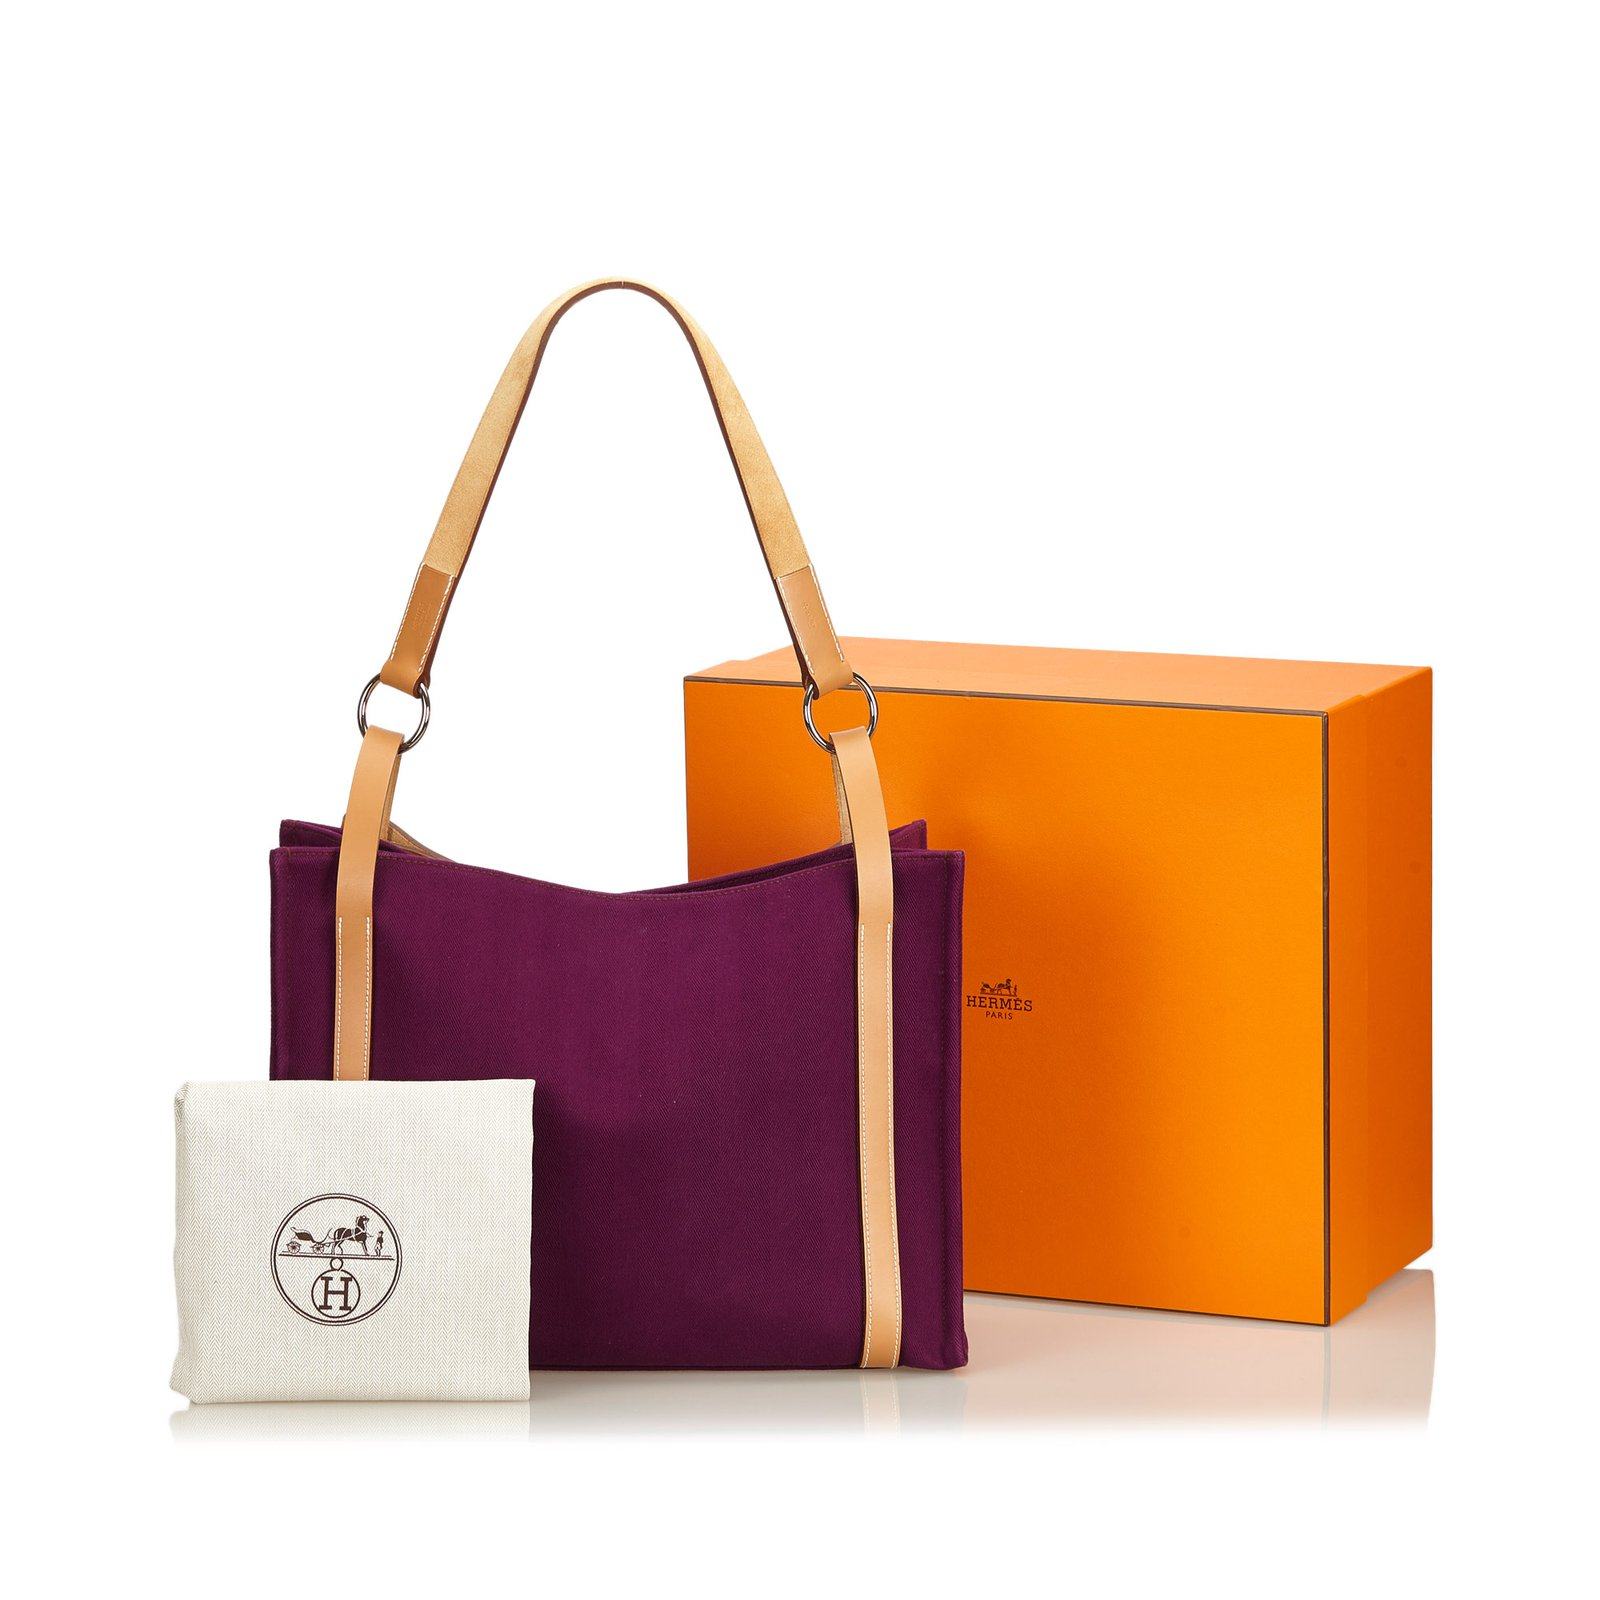 21ed36aa1a88 Hermès Cabalicol Canvas Tote Bag Totes Leather